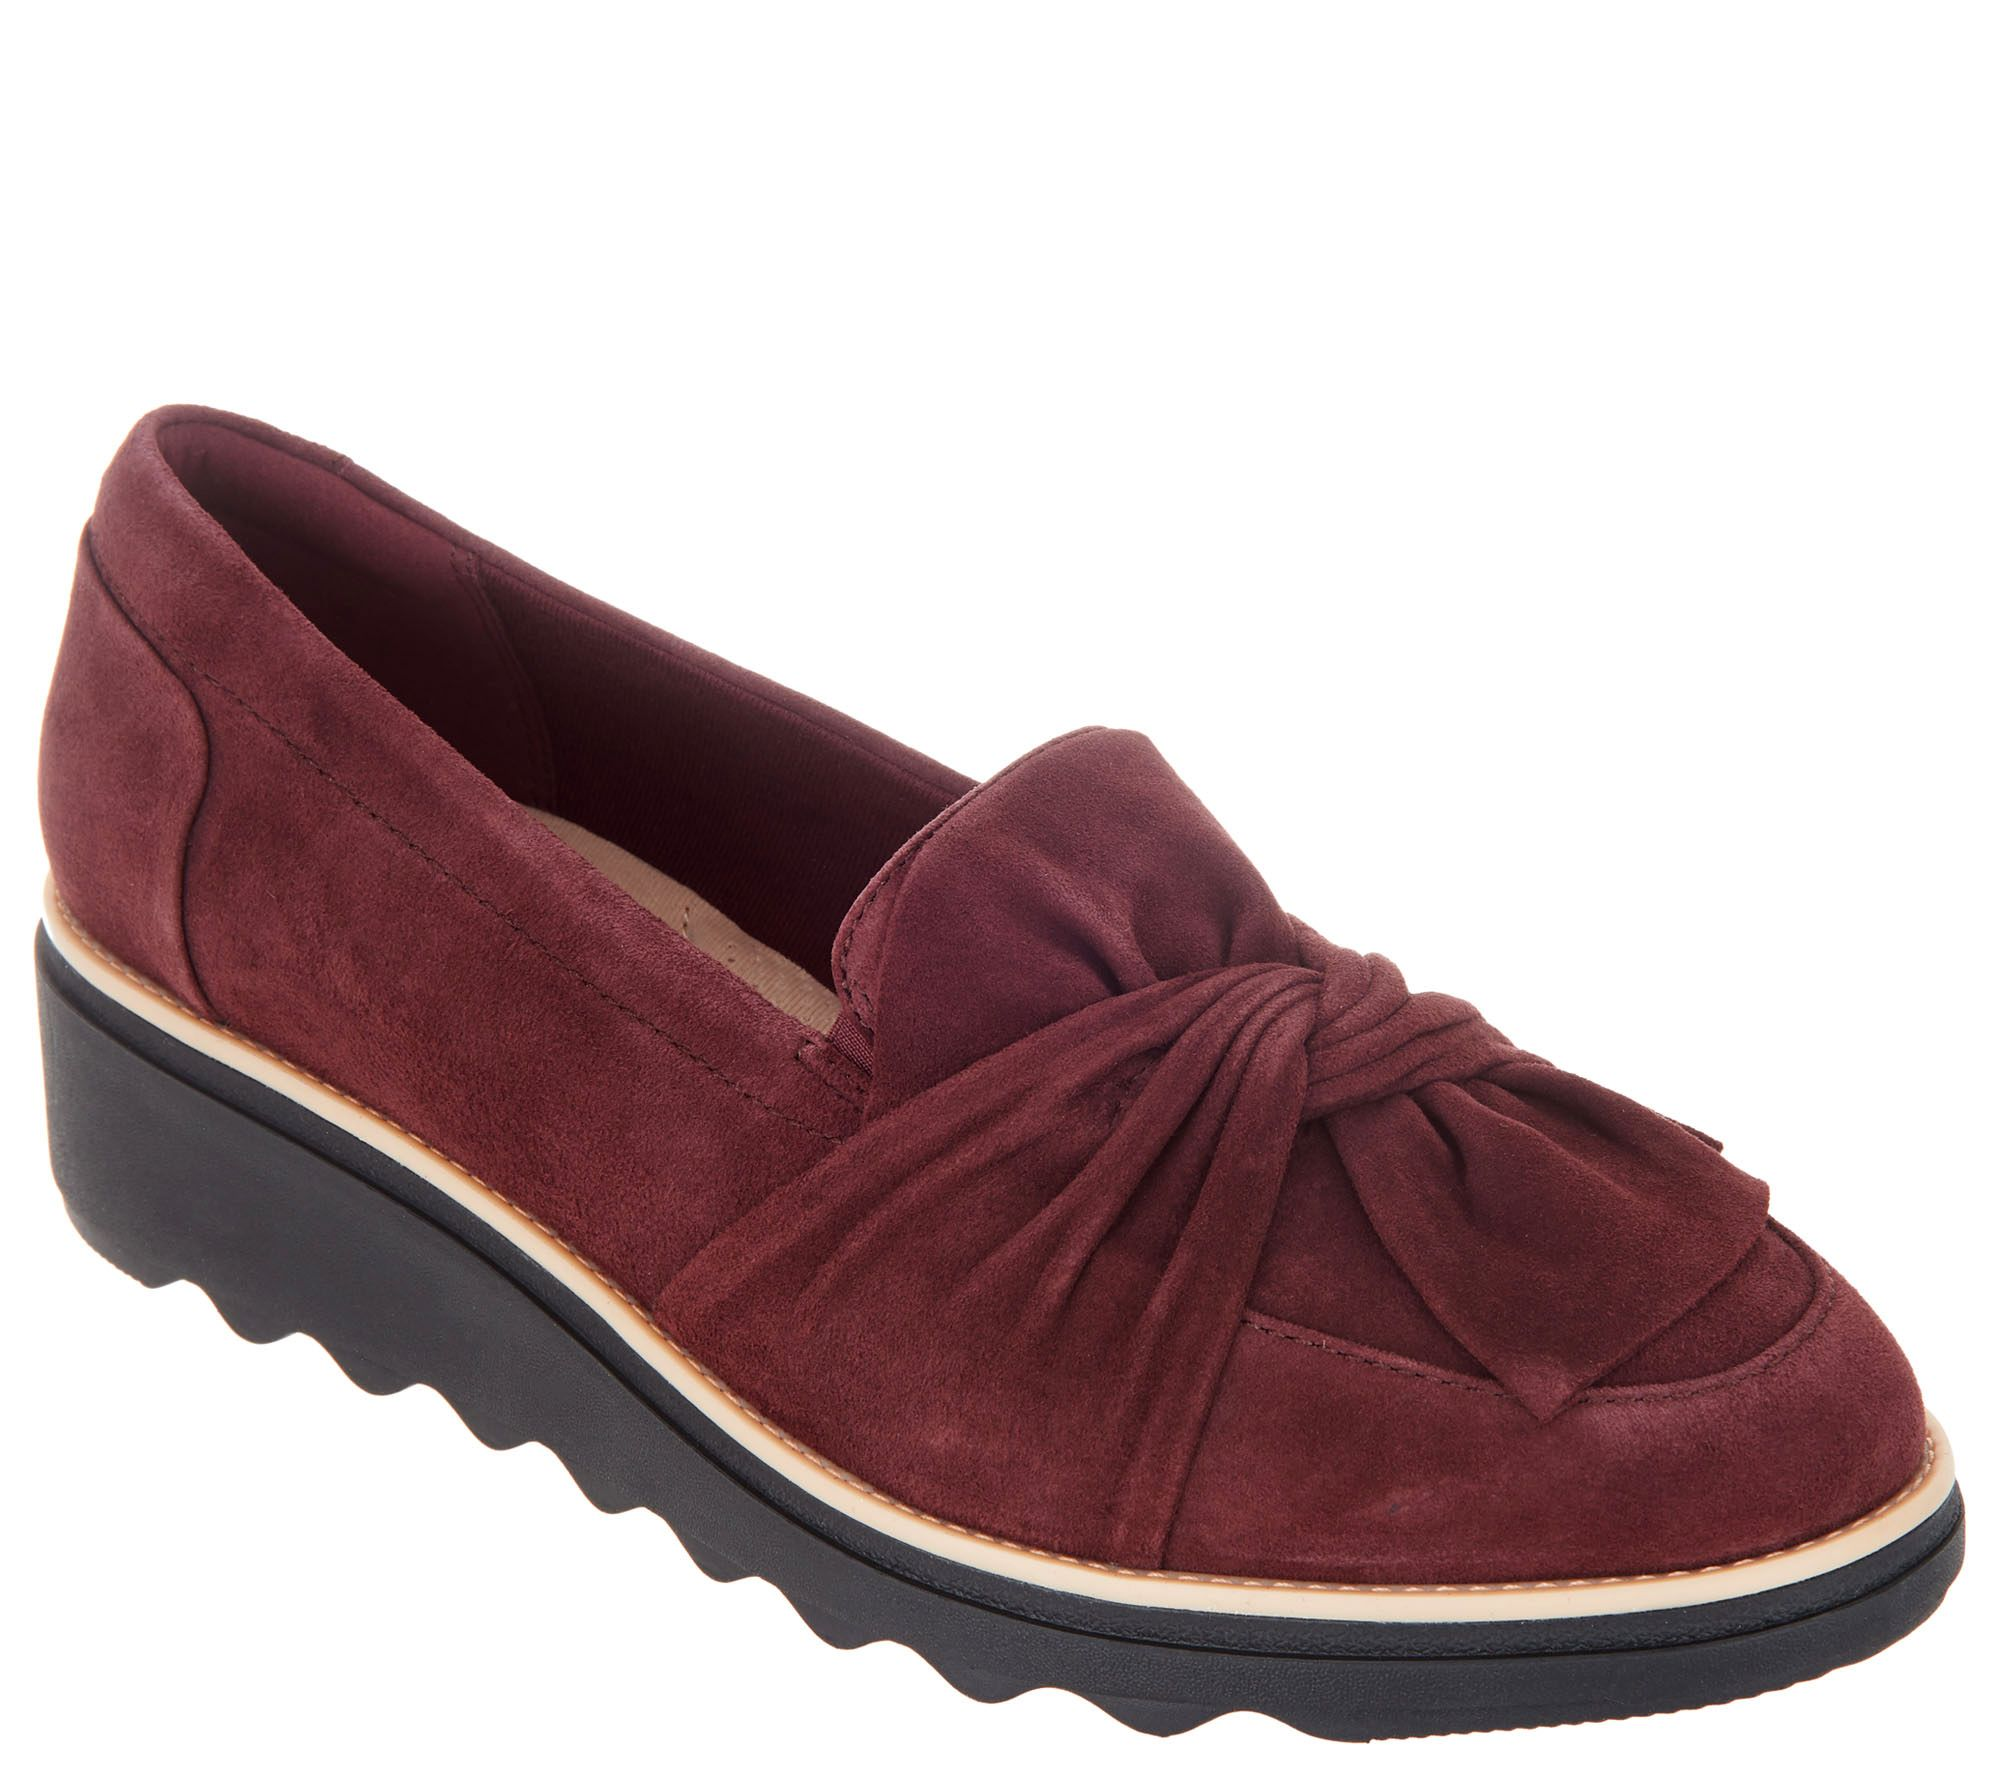 029110c68c9 Clarks Suede Slip-On Loafer with Knotted Detail - Sharon Dasher - Page 1 —  QVC.com